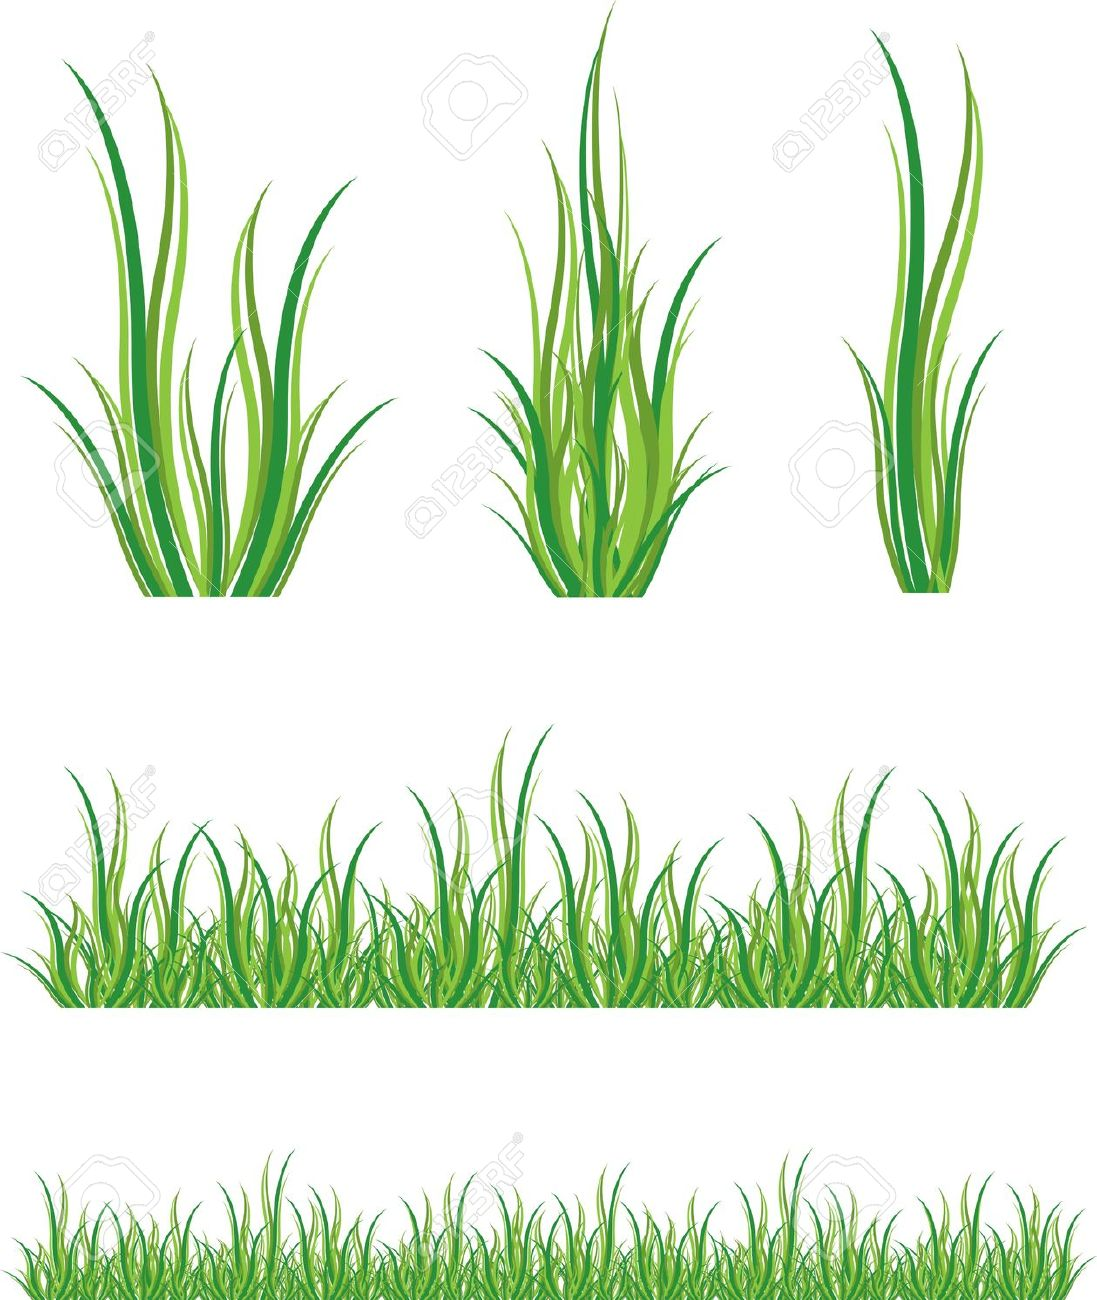 Tufts of grass clipart #13